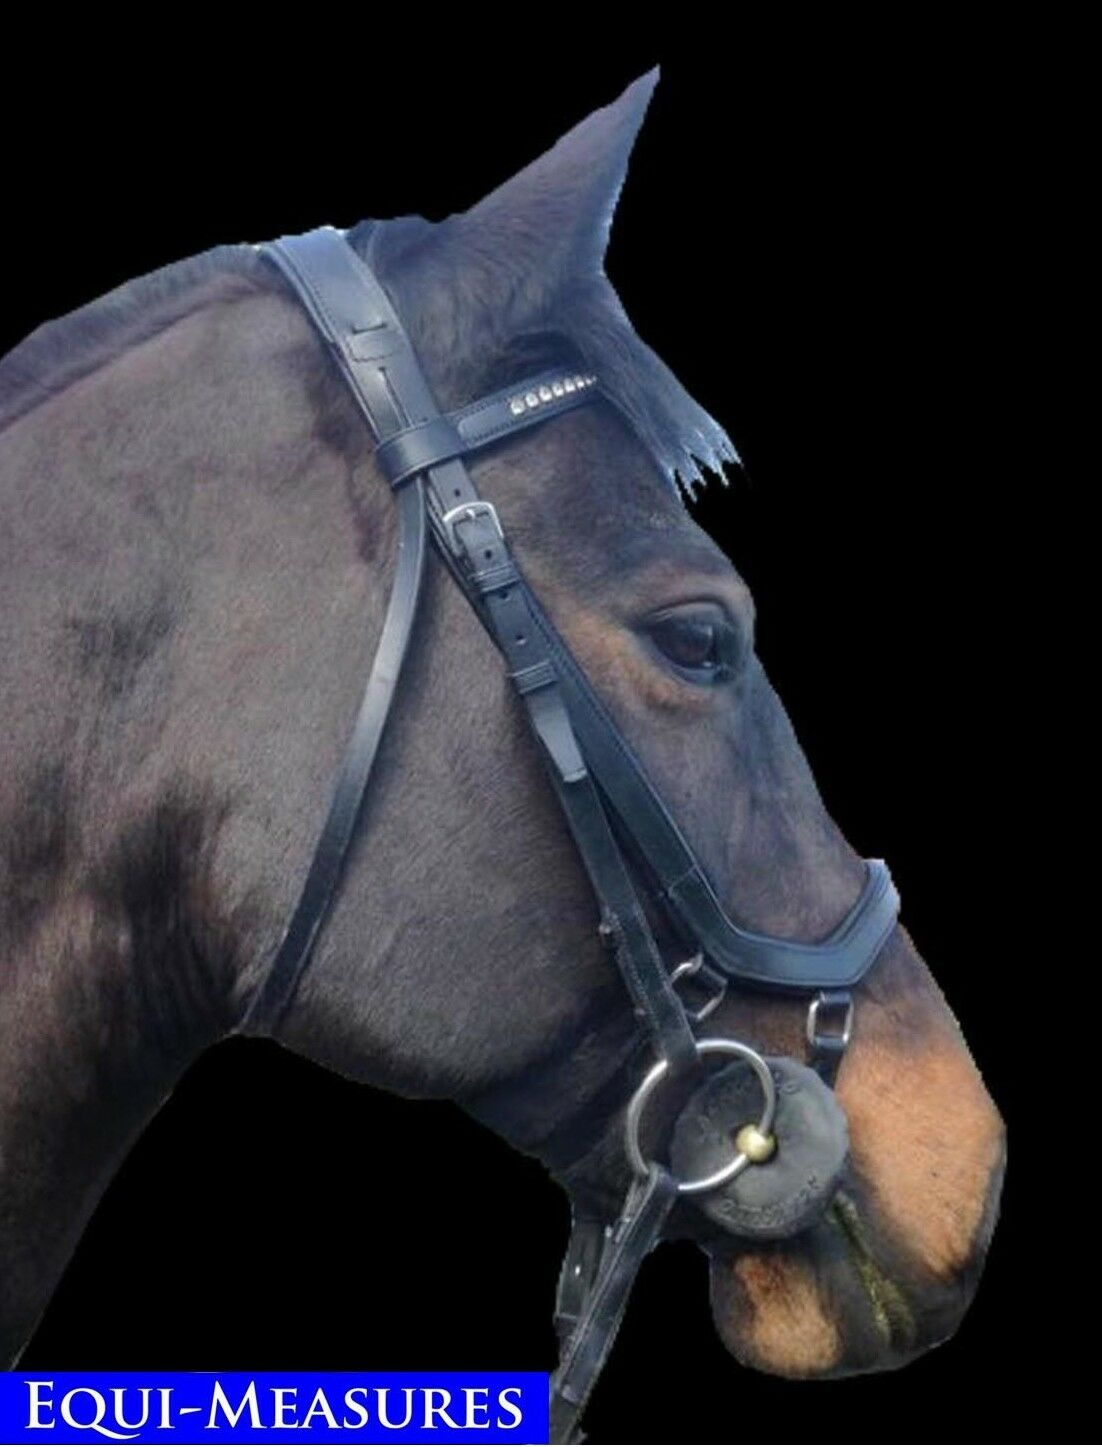 Equi-Measures comfort and control noseband